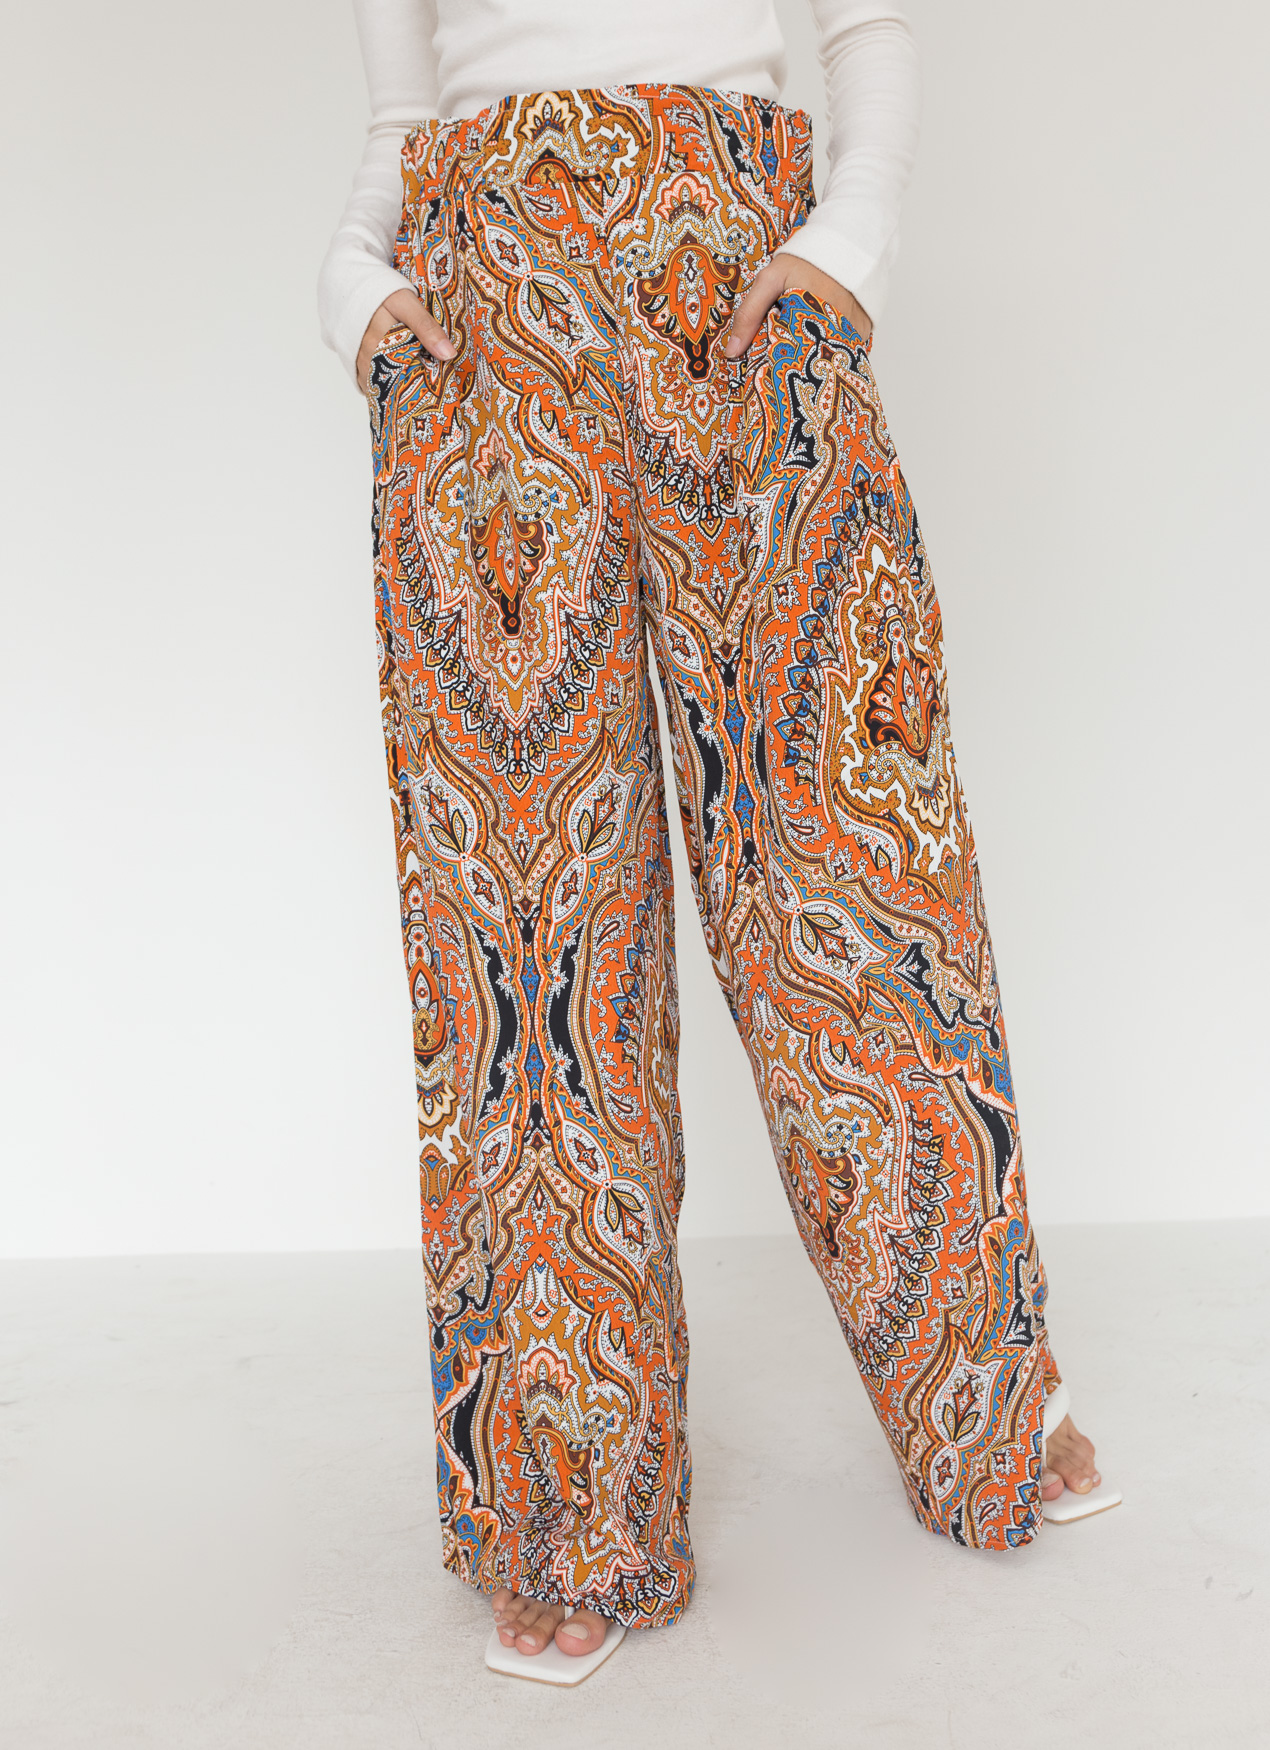 BOWN Tatum Pants - Orange